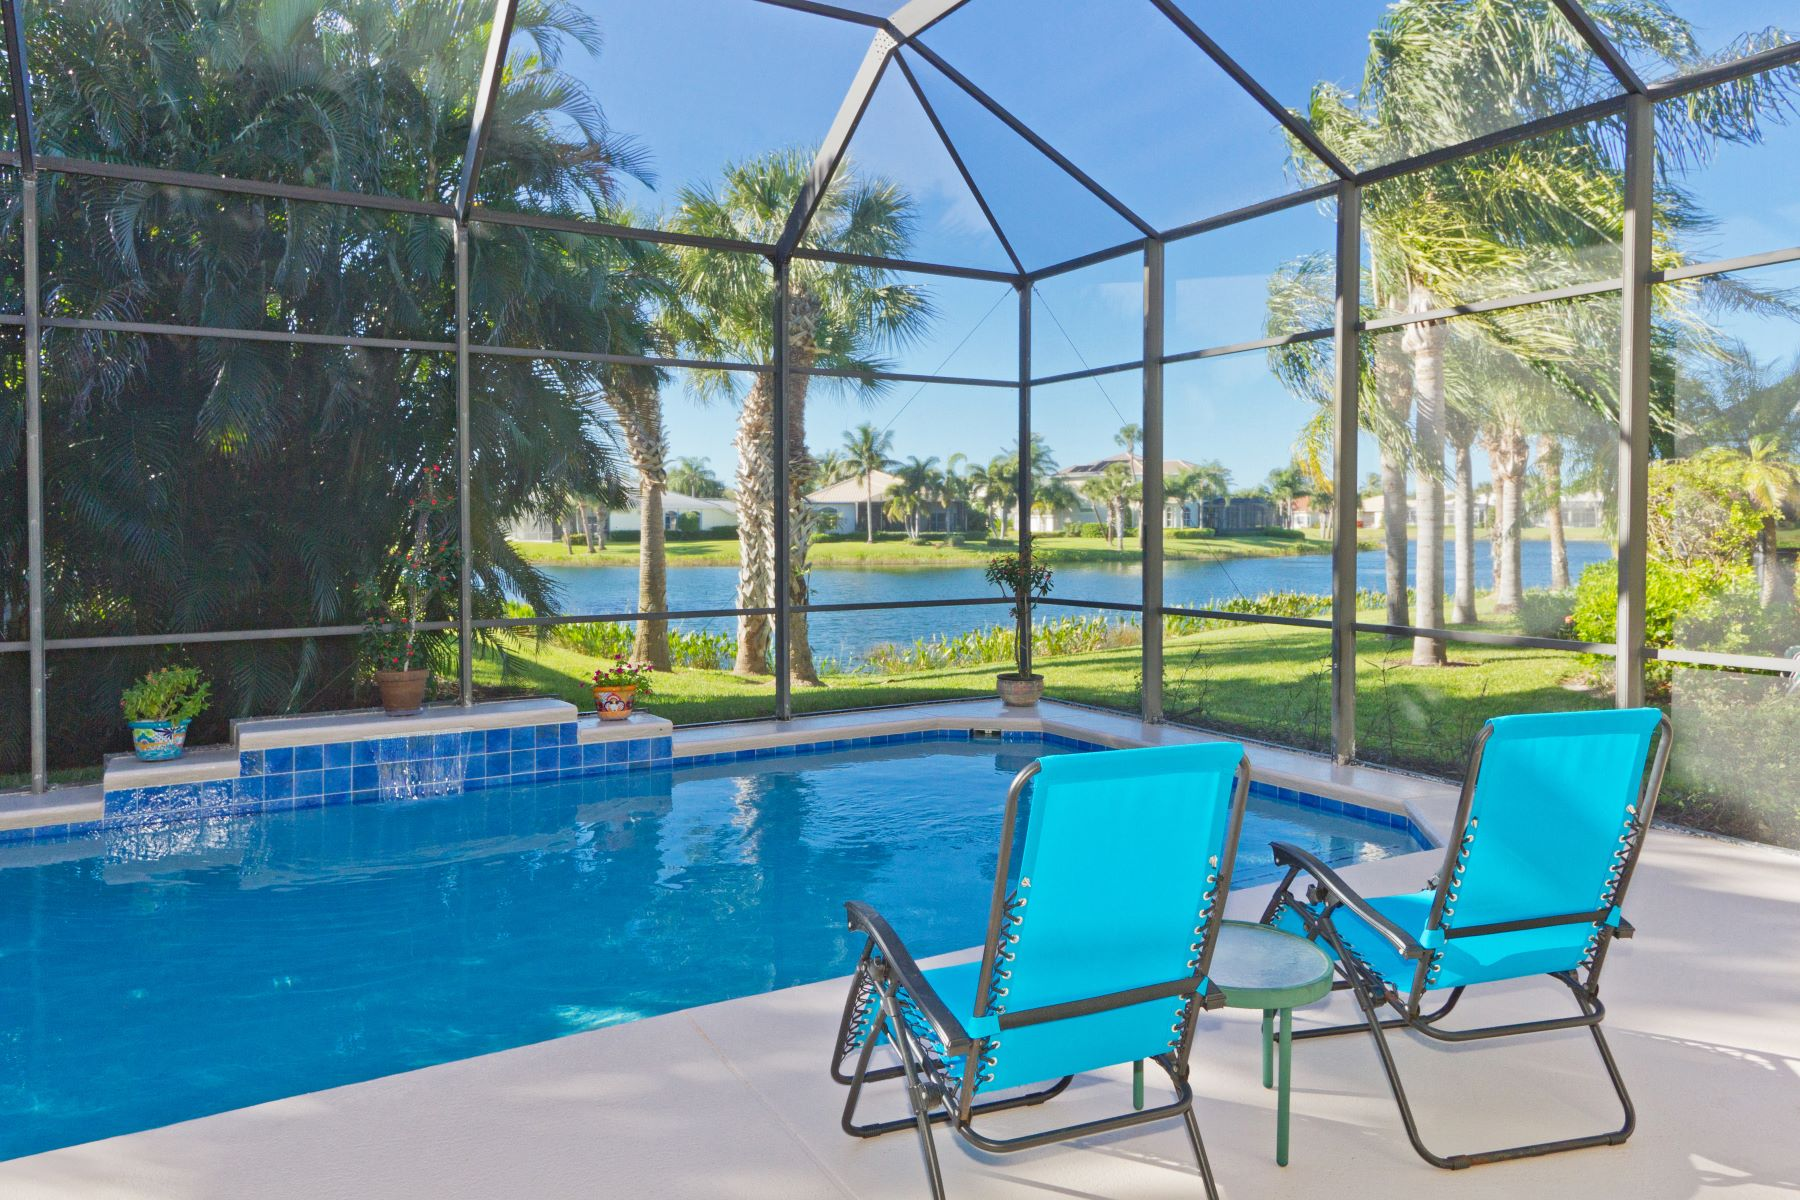 Single Family Homes for Sale at Enjoy Poolside Living with Lake Views! 1338 Riverside Lane Vero Beach, Florida 32963 United States